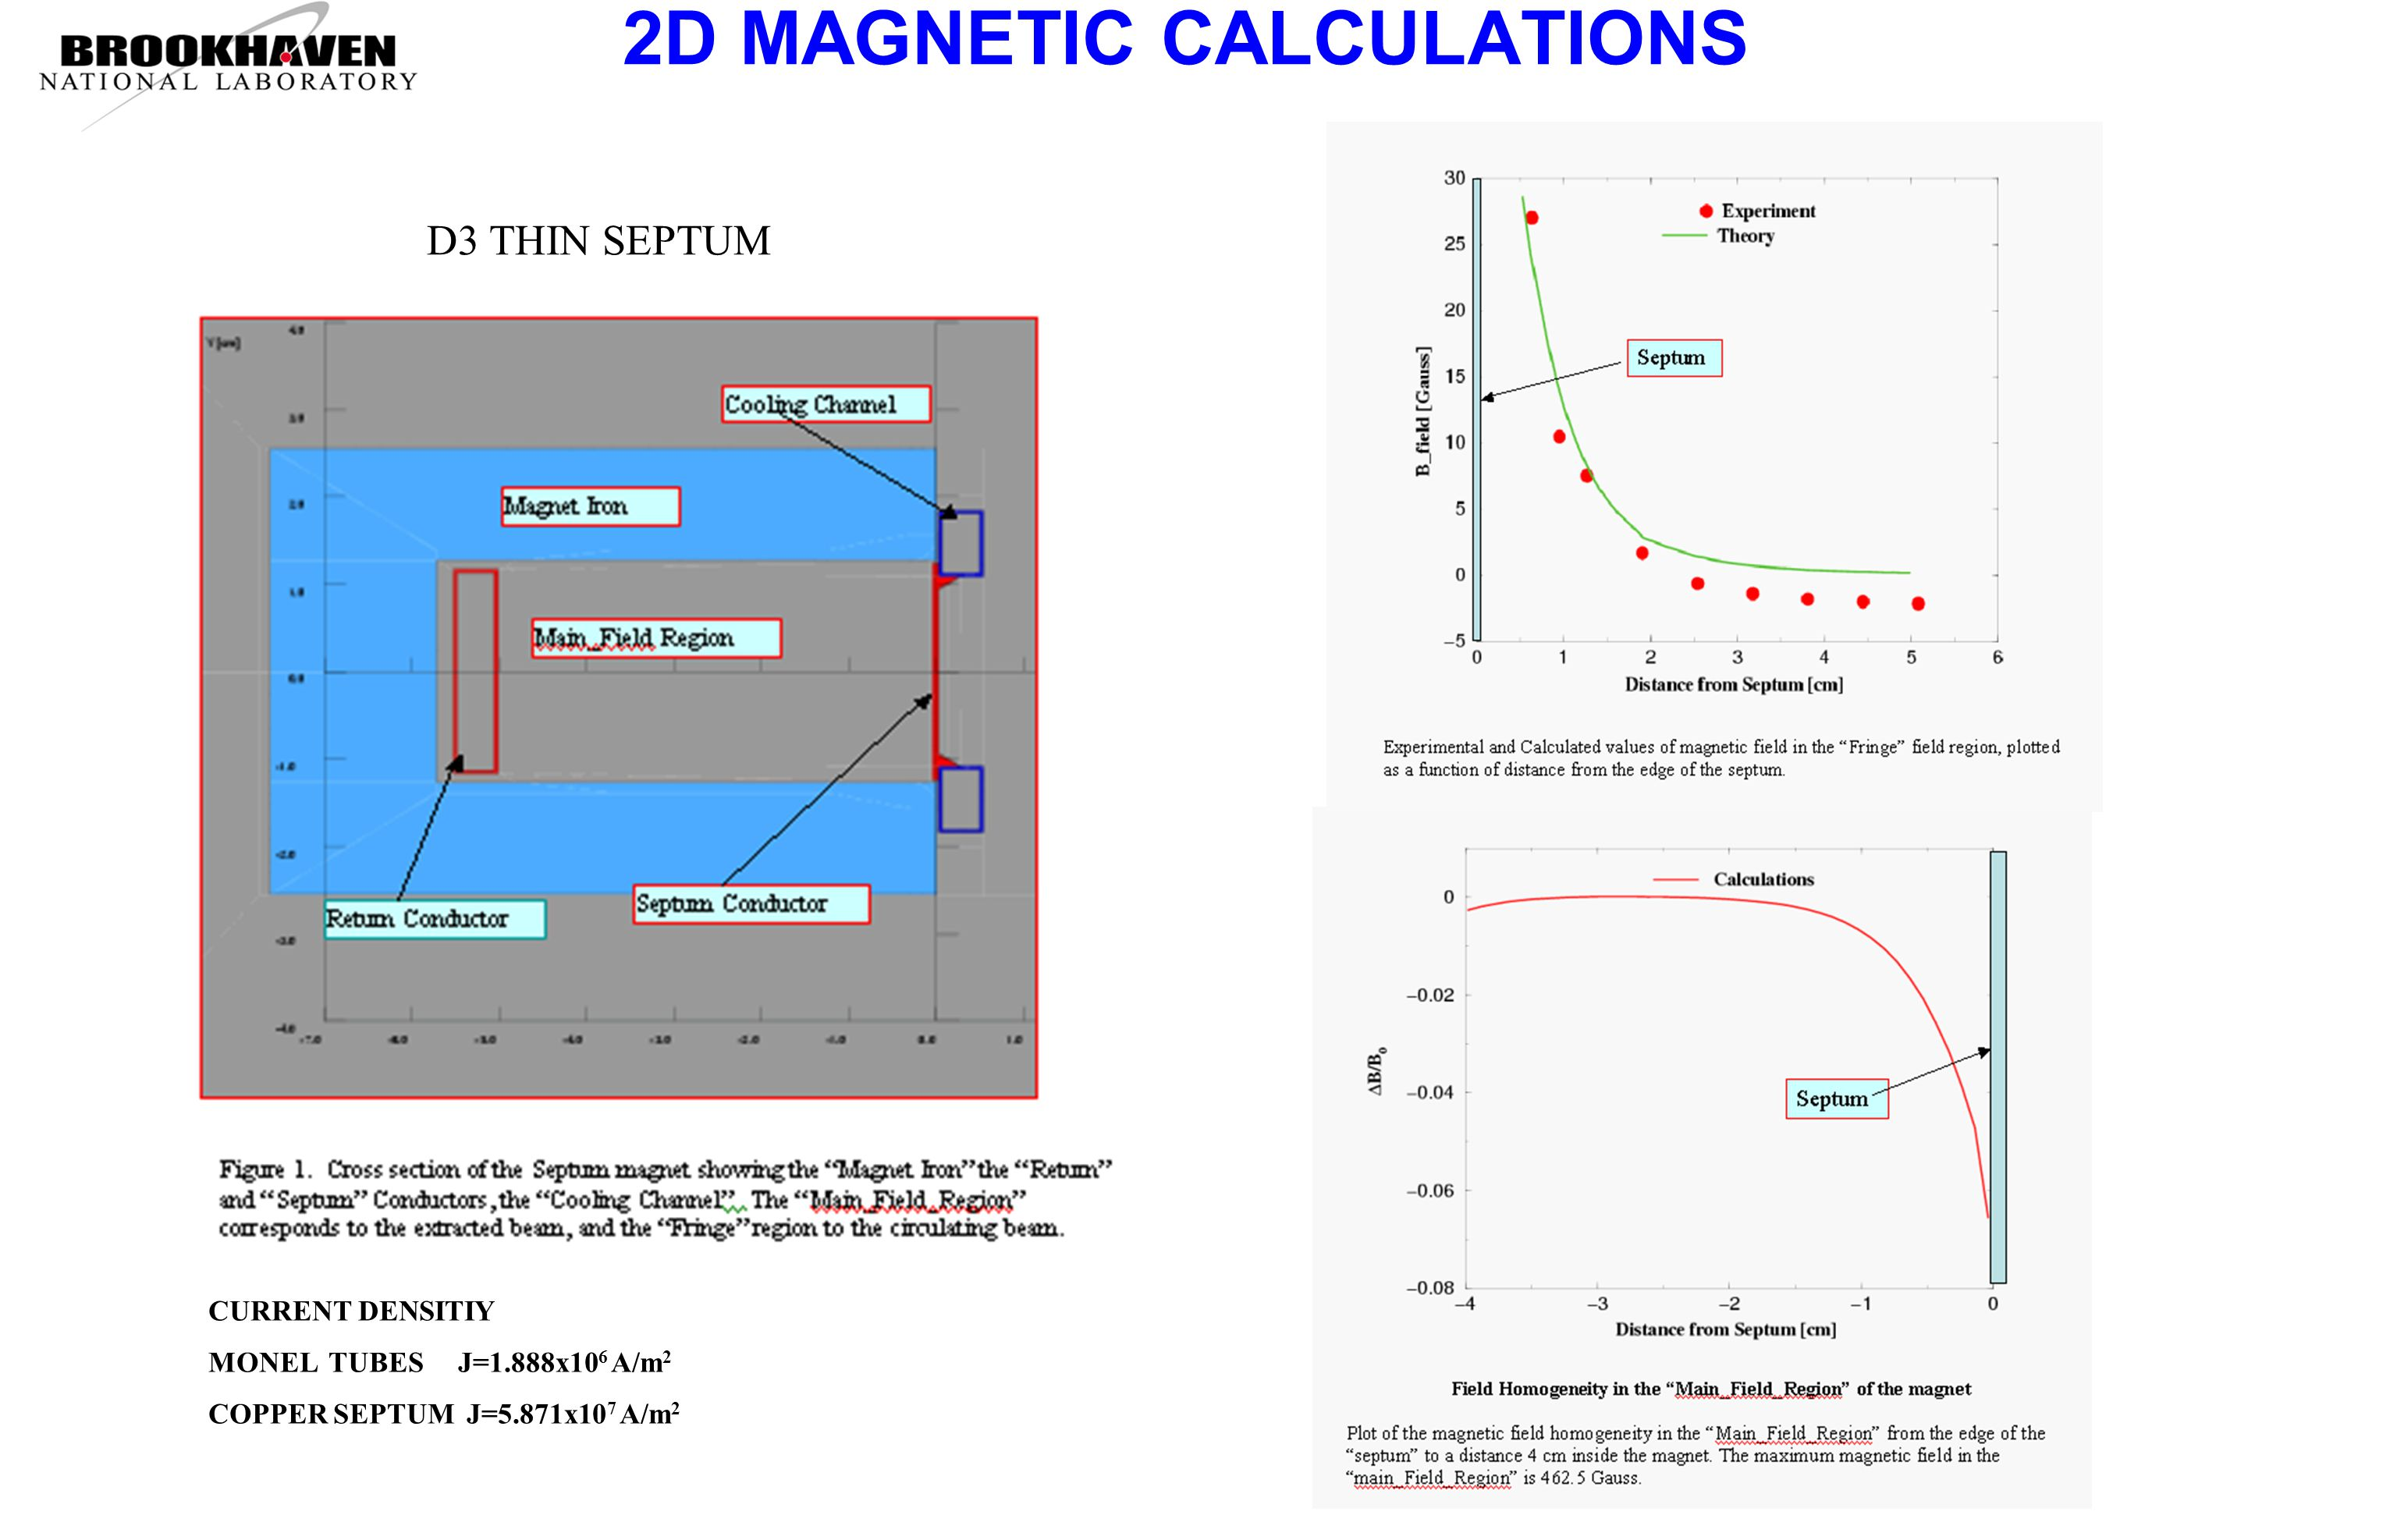 2D MAGNETIC CALCULATIONS CURRENT DENSITIY MONEL TUBES J=1.888x10 6 A/m 2 COPPER SEPTUM J=5.871x10 7 A/m 2 D3 THIN SEPTUM